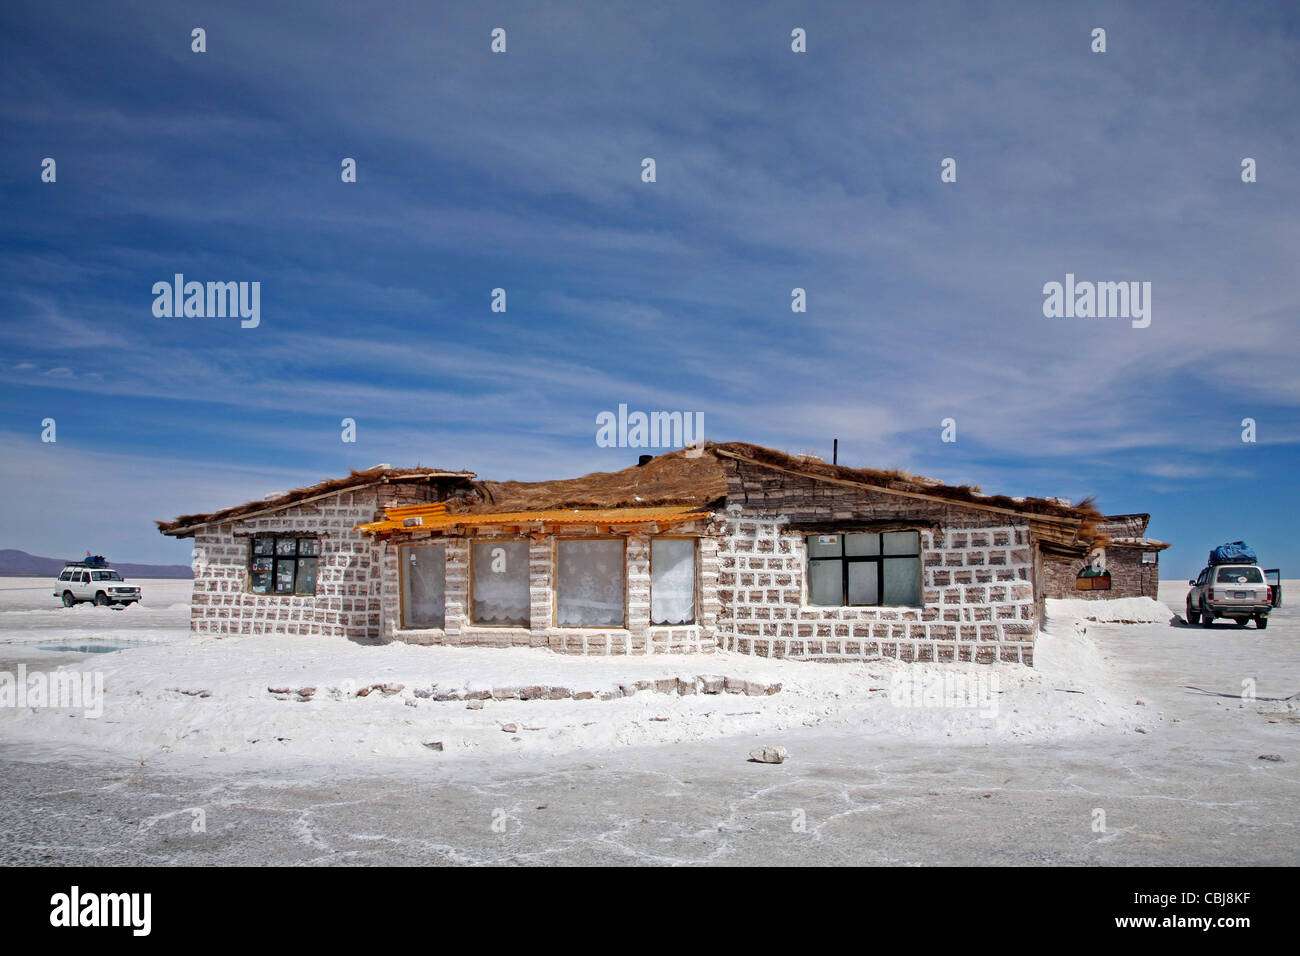 Salt hotel for tourists in the middle of the salt flat Salar de Uyuni, Altiplano in Bolivia - Stock Image